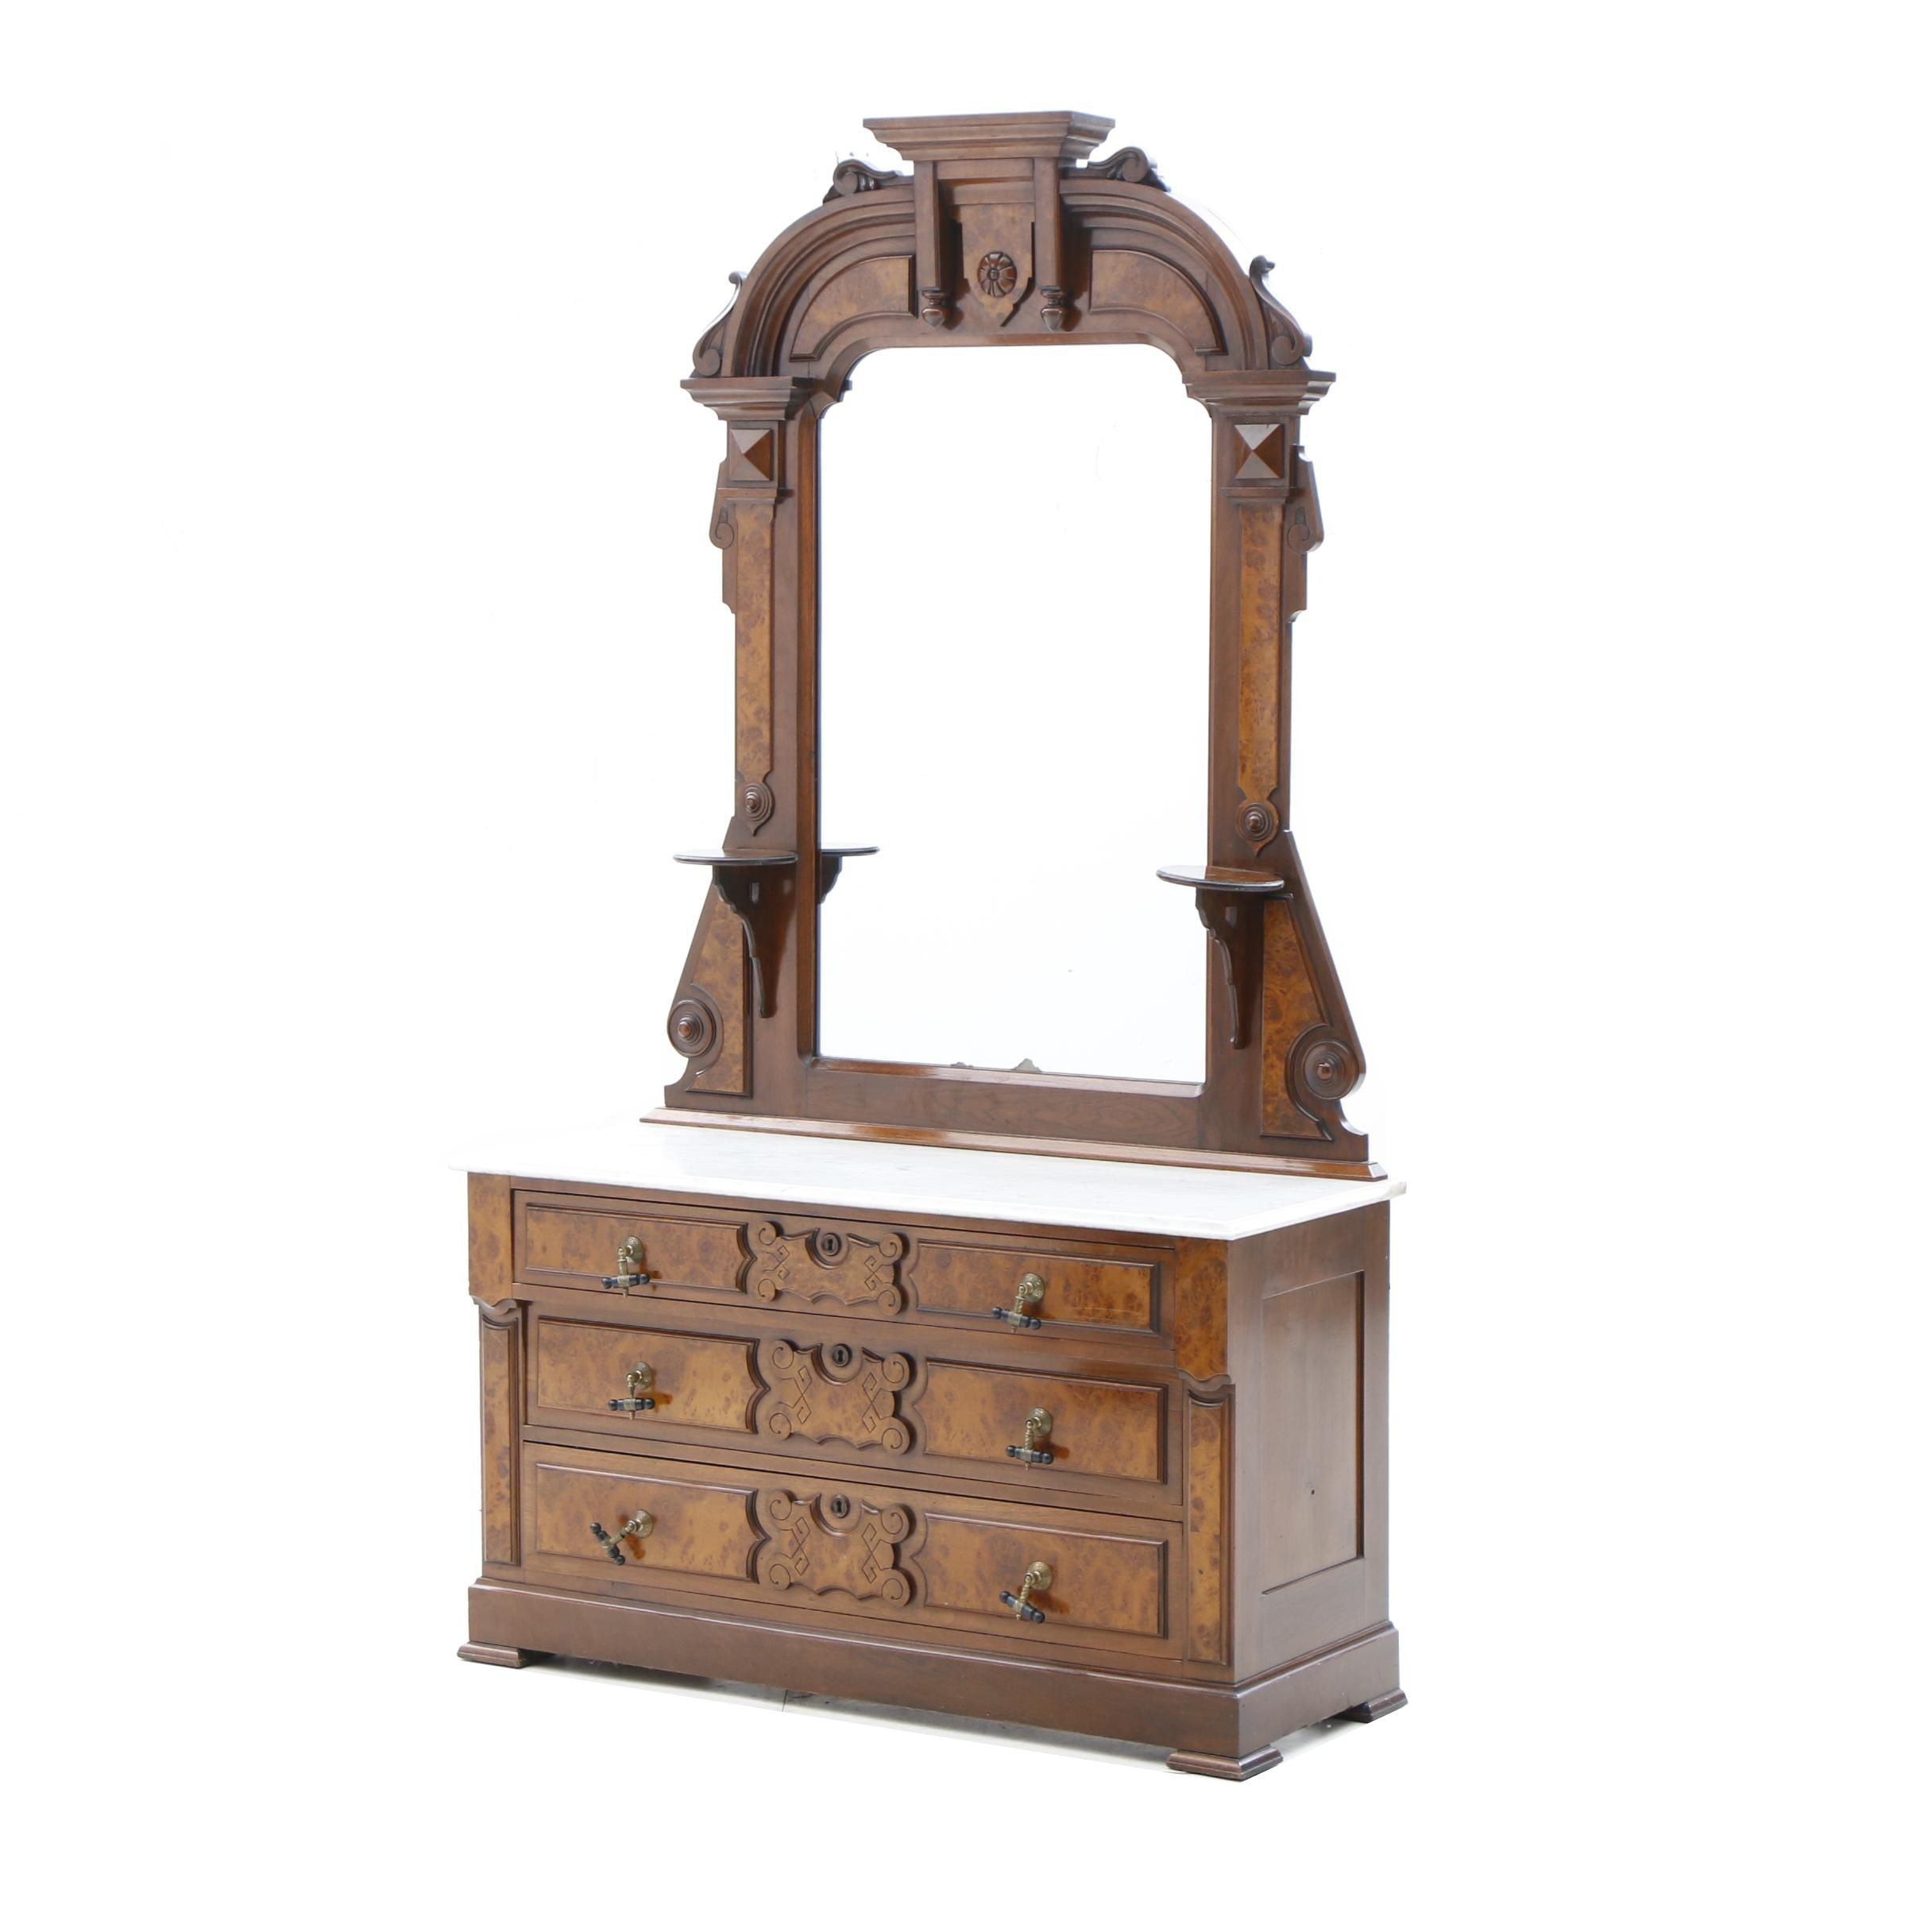 Victorian Walnut Chest with Mirror, Mid to Late 19th Century